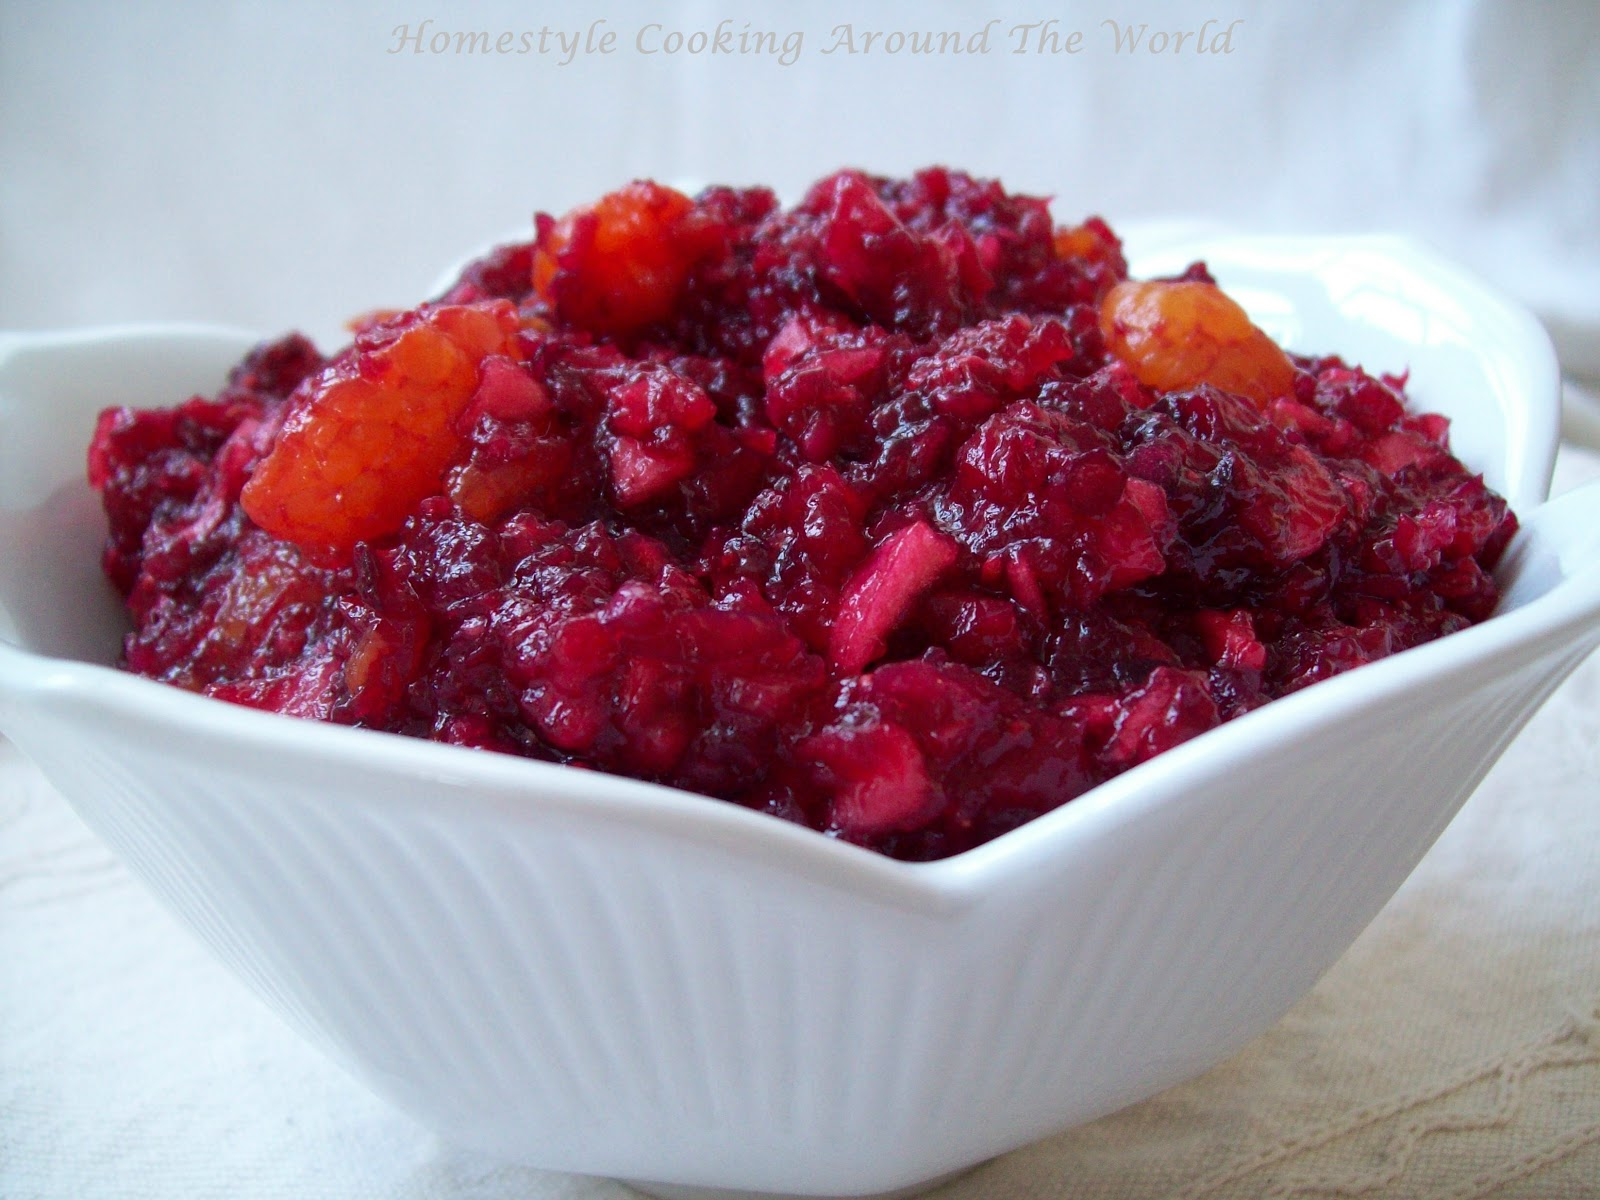 Homestyle Cooking Around The World: Cranberry Salad/Relish